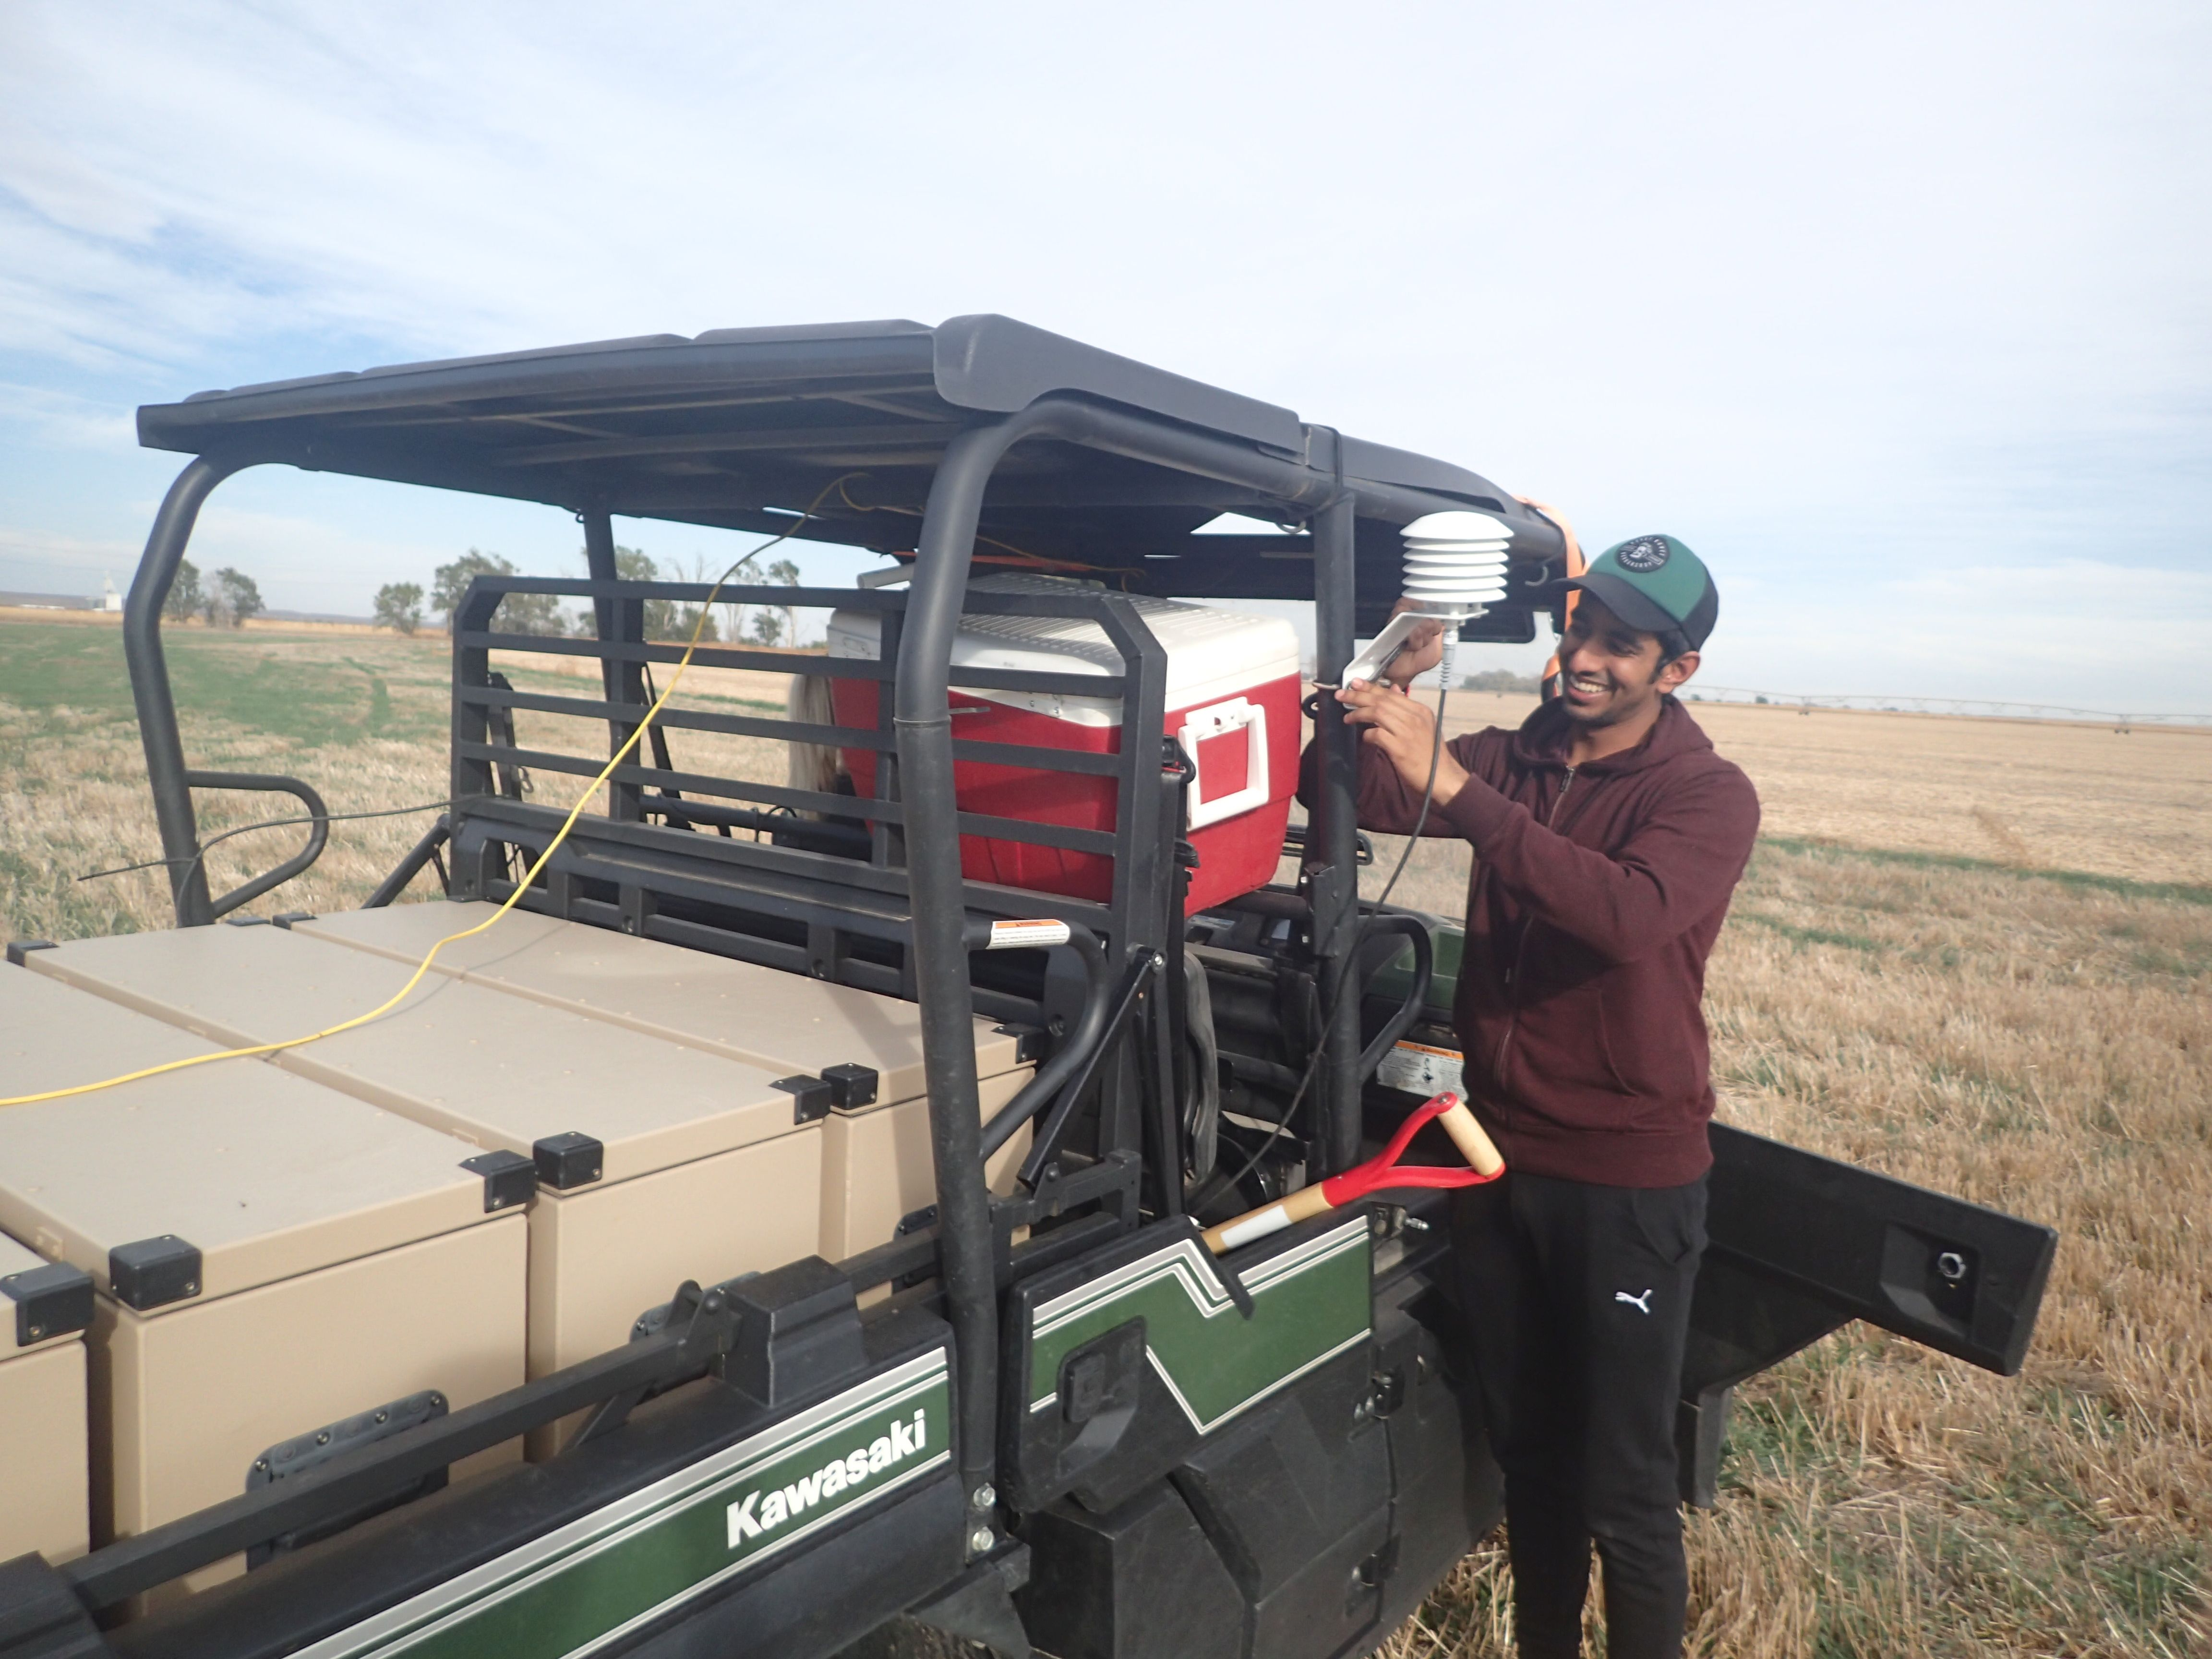 Visiting doctoral student Thigesh Vather works with the cosmic ray rover in western Nebraska, an ATV outfitted with probes that collect soil moisture data from the atmosphere. Vather and WFI Faculty Fellow Trenton Franz analyzed the probe's soil moisture